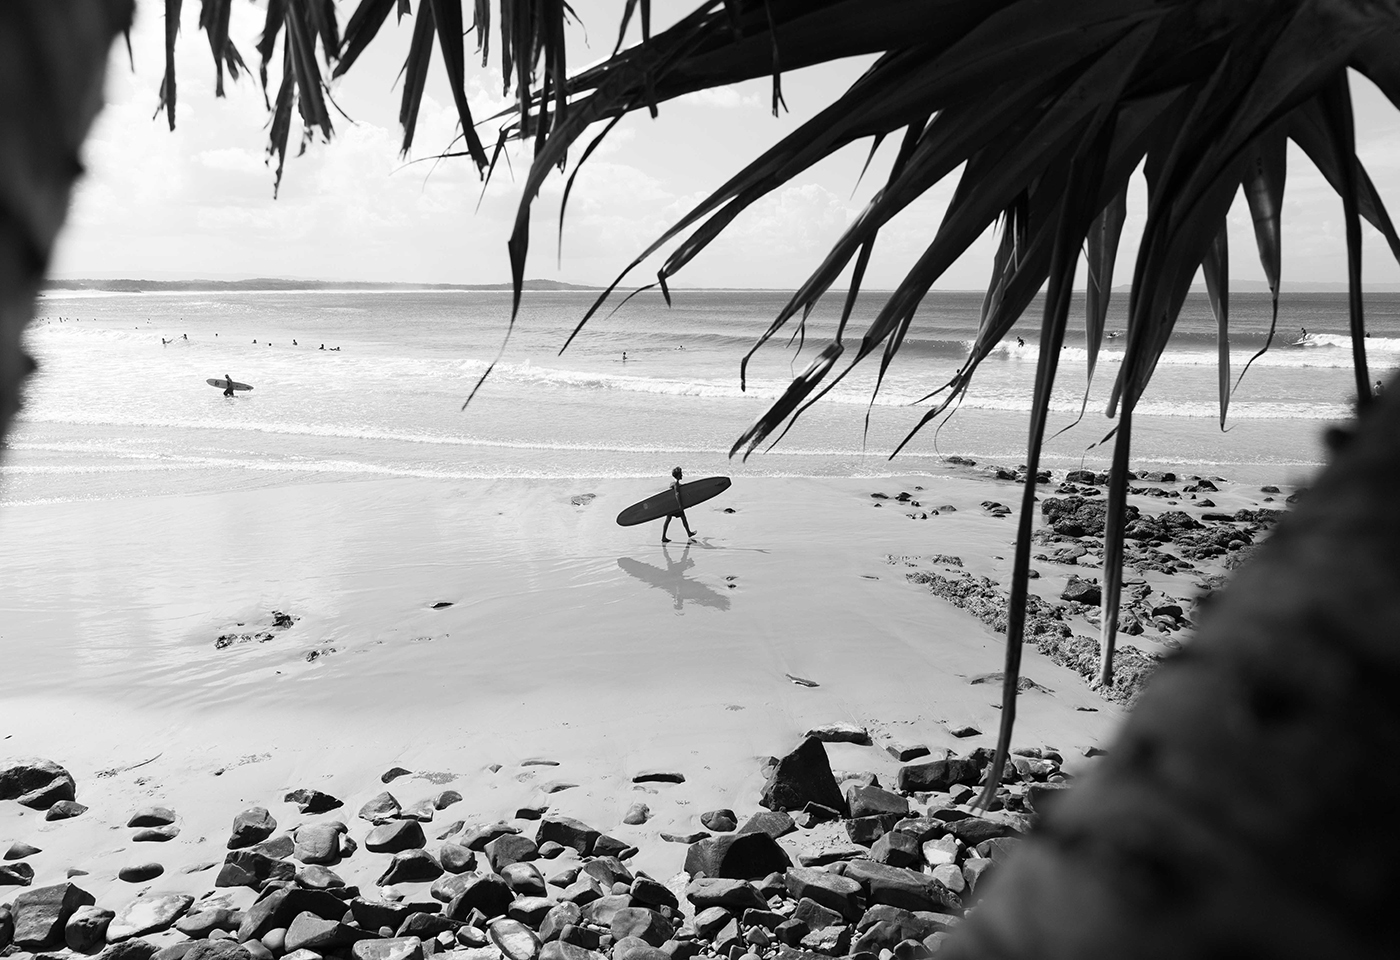 black and white landscape image of Noosa by @miasara